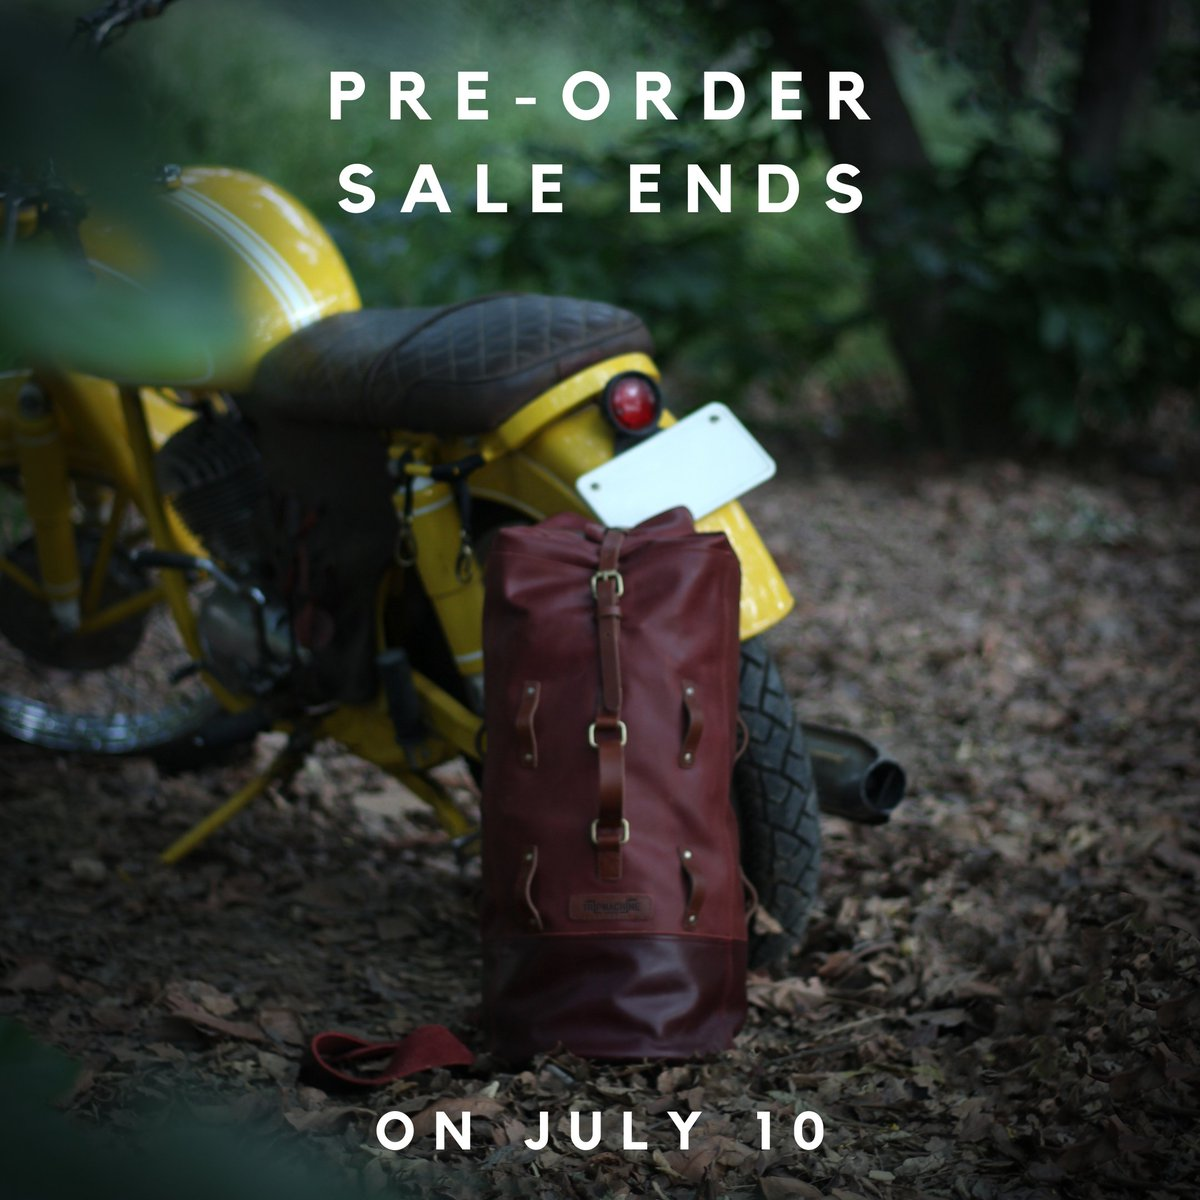 TWO DAYS LEFT TO PRE-ORDER  Tomorrow is the last day to order the Duffel with a 20% Discount. #militaryduffel #leathergoods #bikerlife #bikerlifestyle  #dufflebag #duffle #rajdoot175 #vintagemotorcycle #twostroketuesday #twostroke #tripmachineco https://www.tripmachinecompany.com/collections/military-dufflebag…pic.twitter.com/f1oTOQMqQn